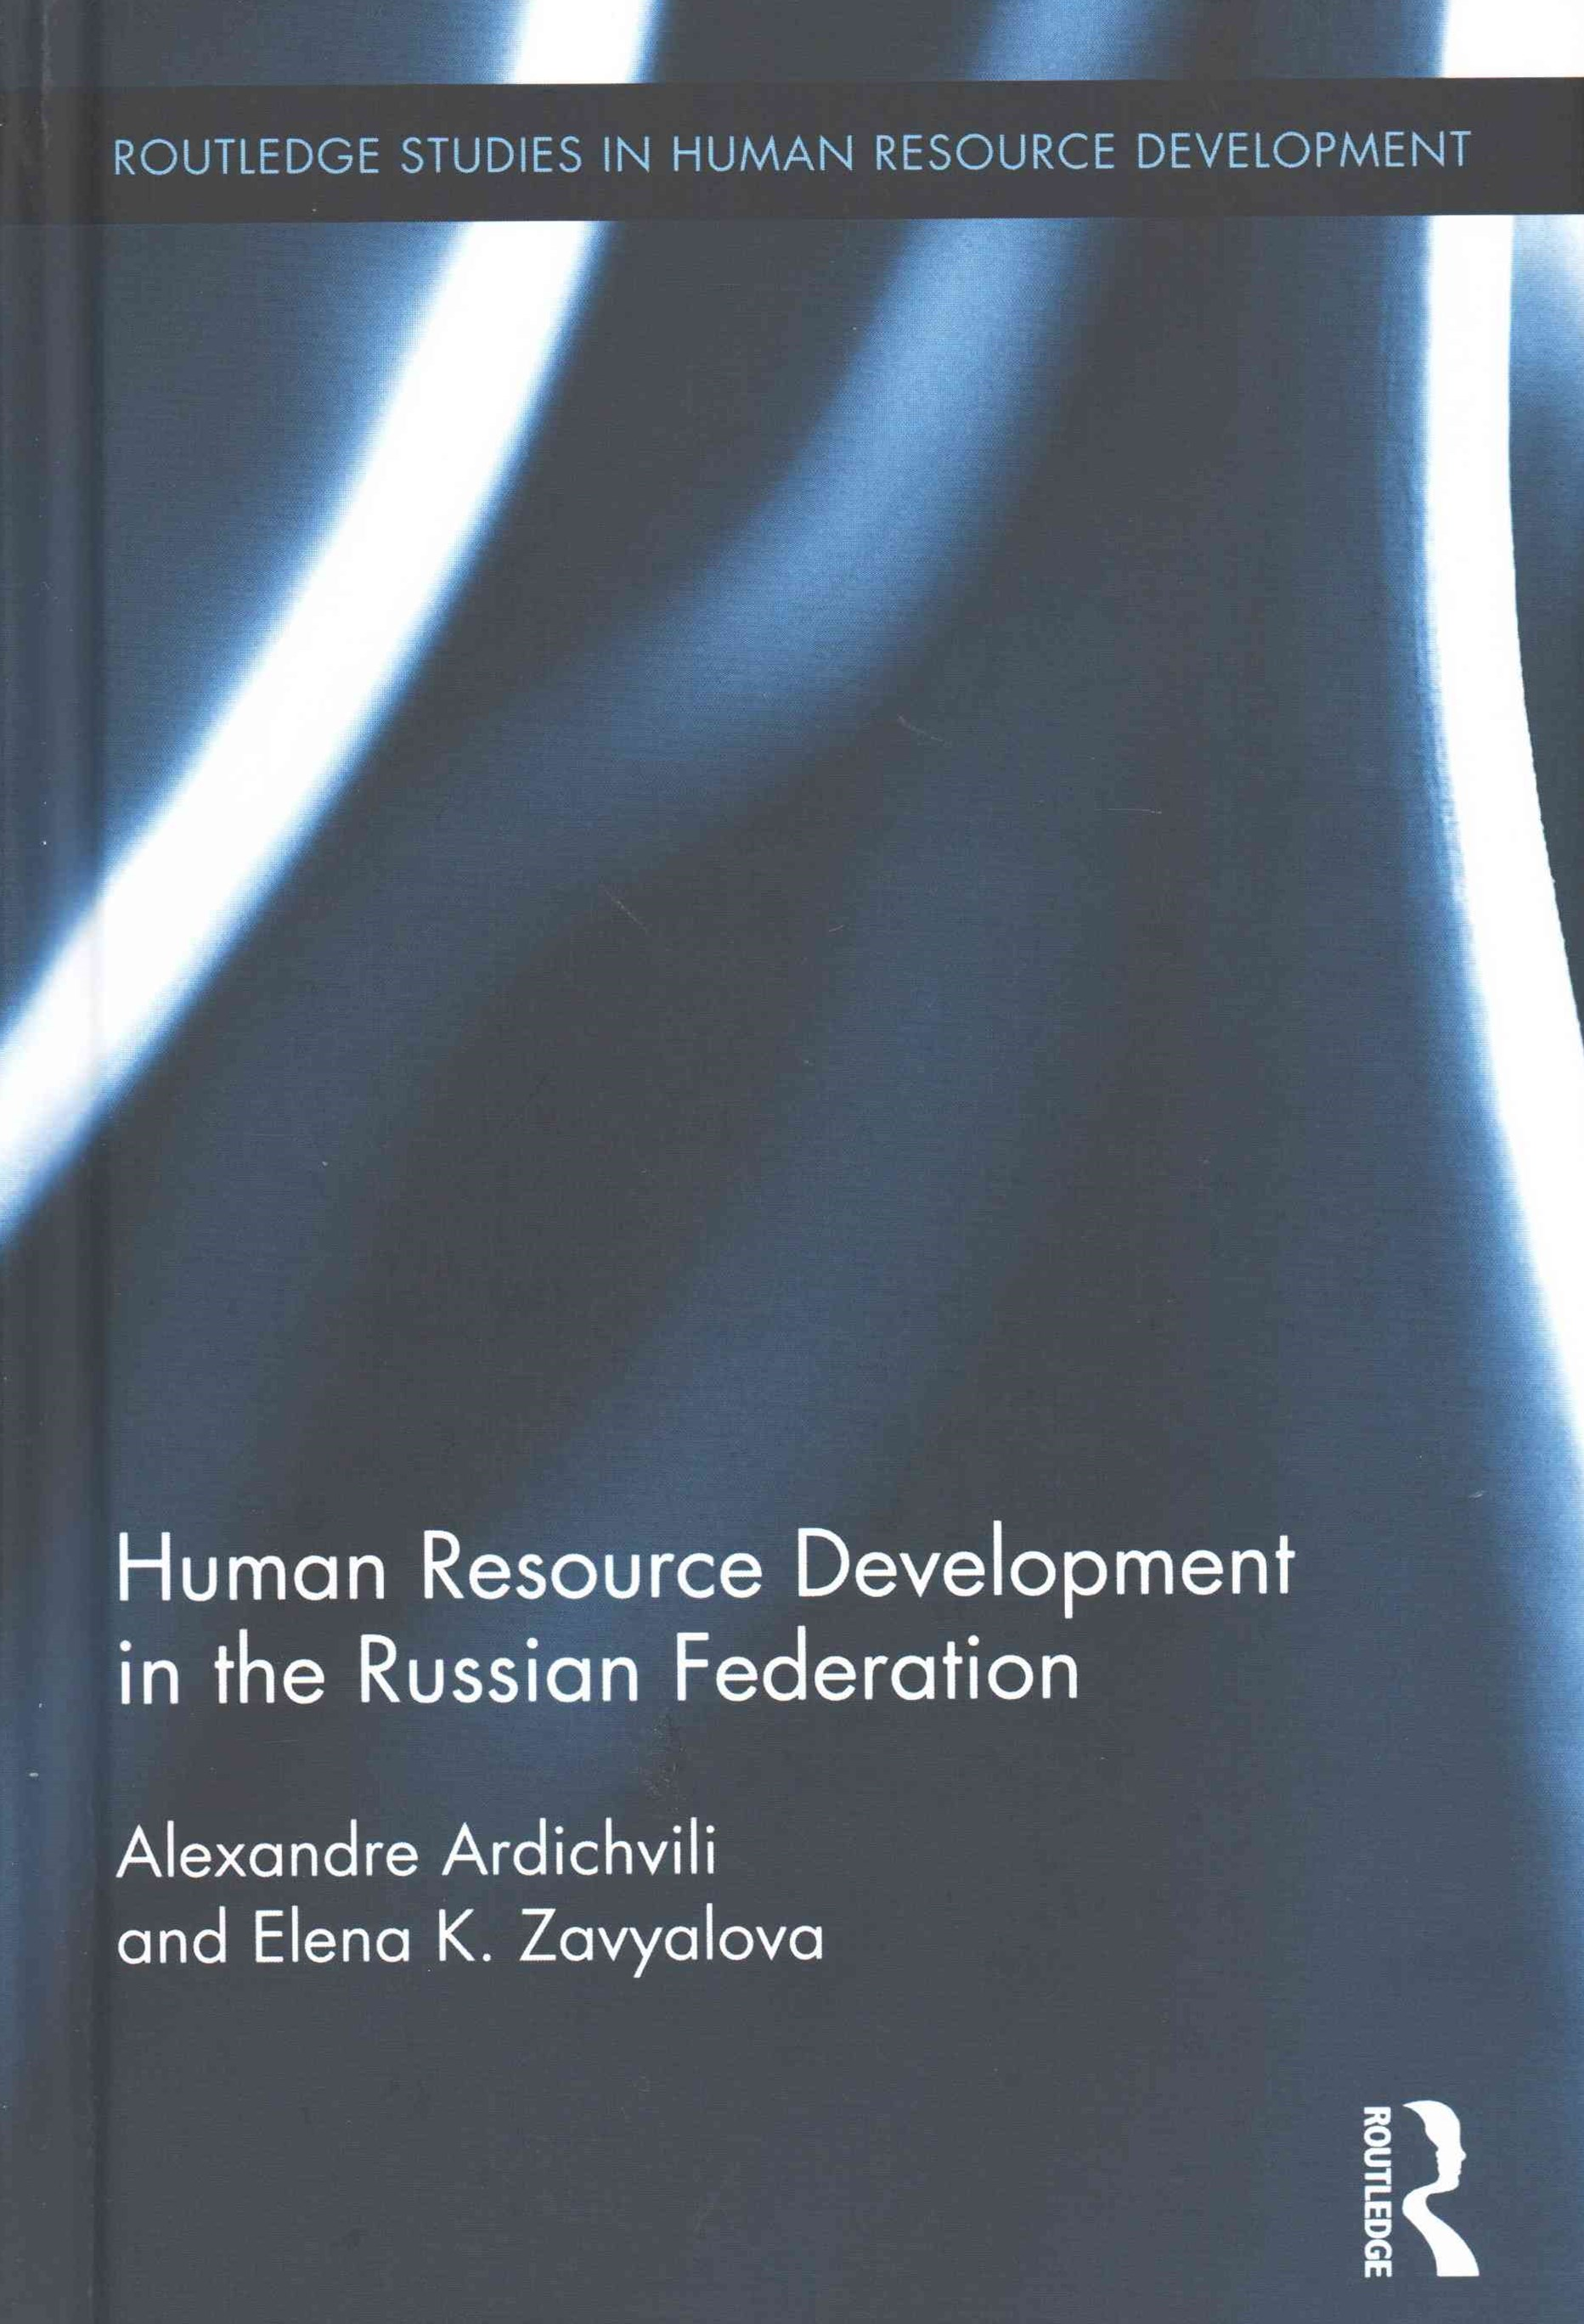 Human Resource Development in the Russian Federation